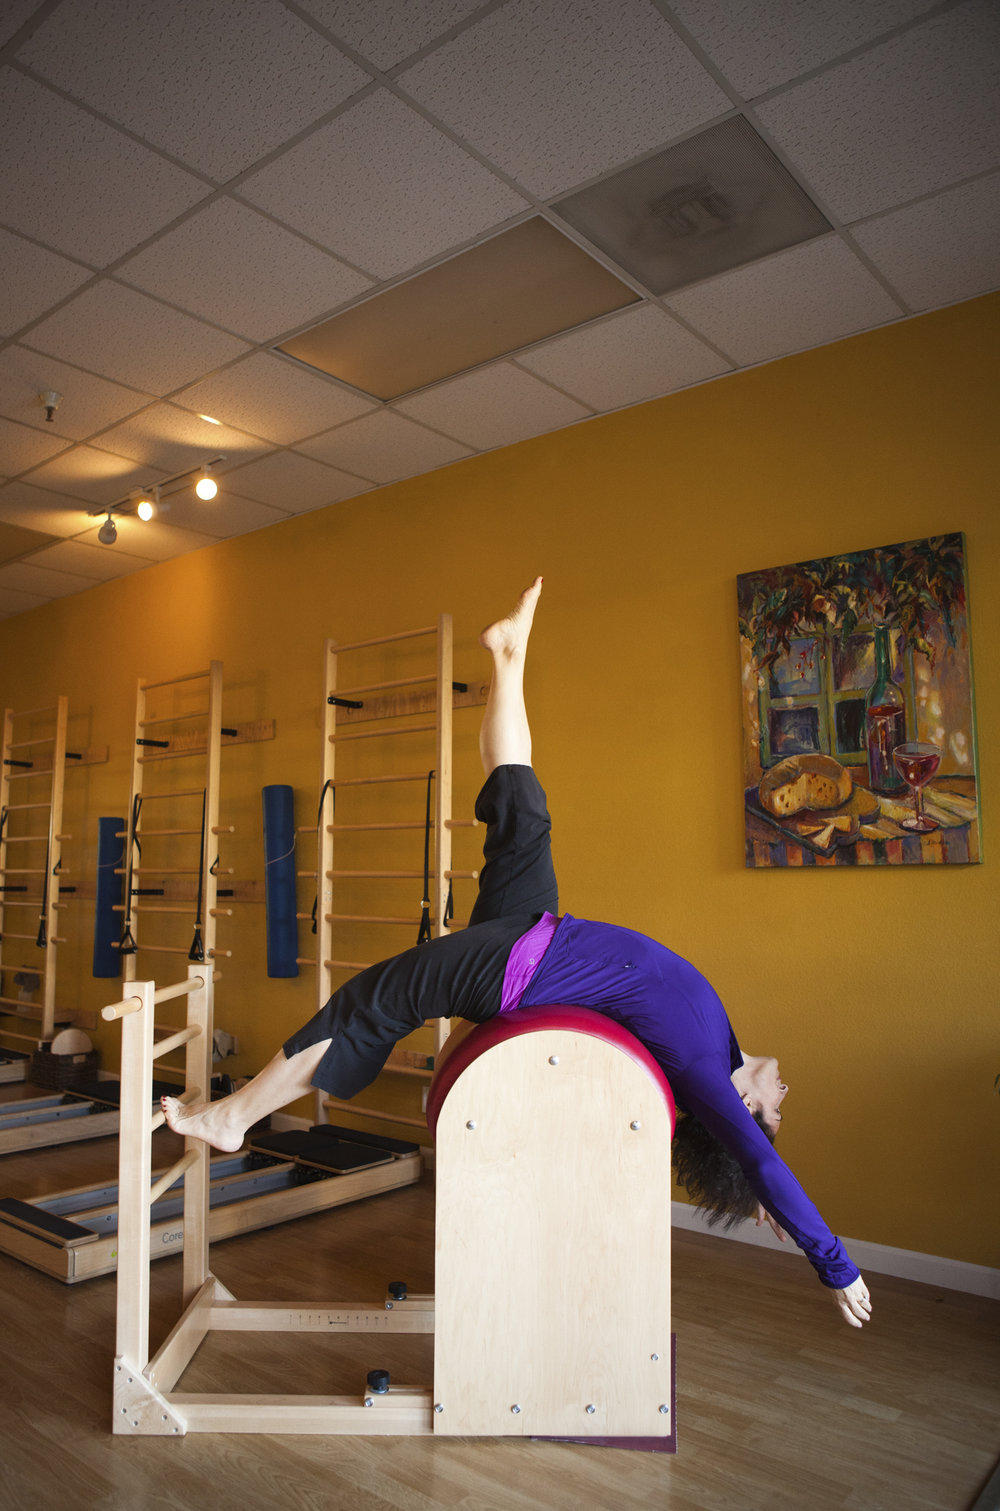 07-pilates-old-location.jpg